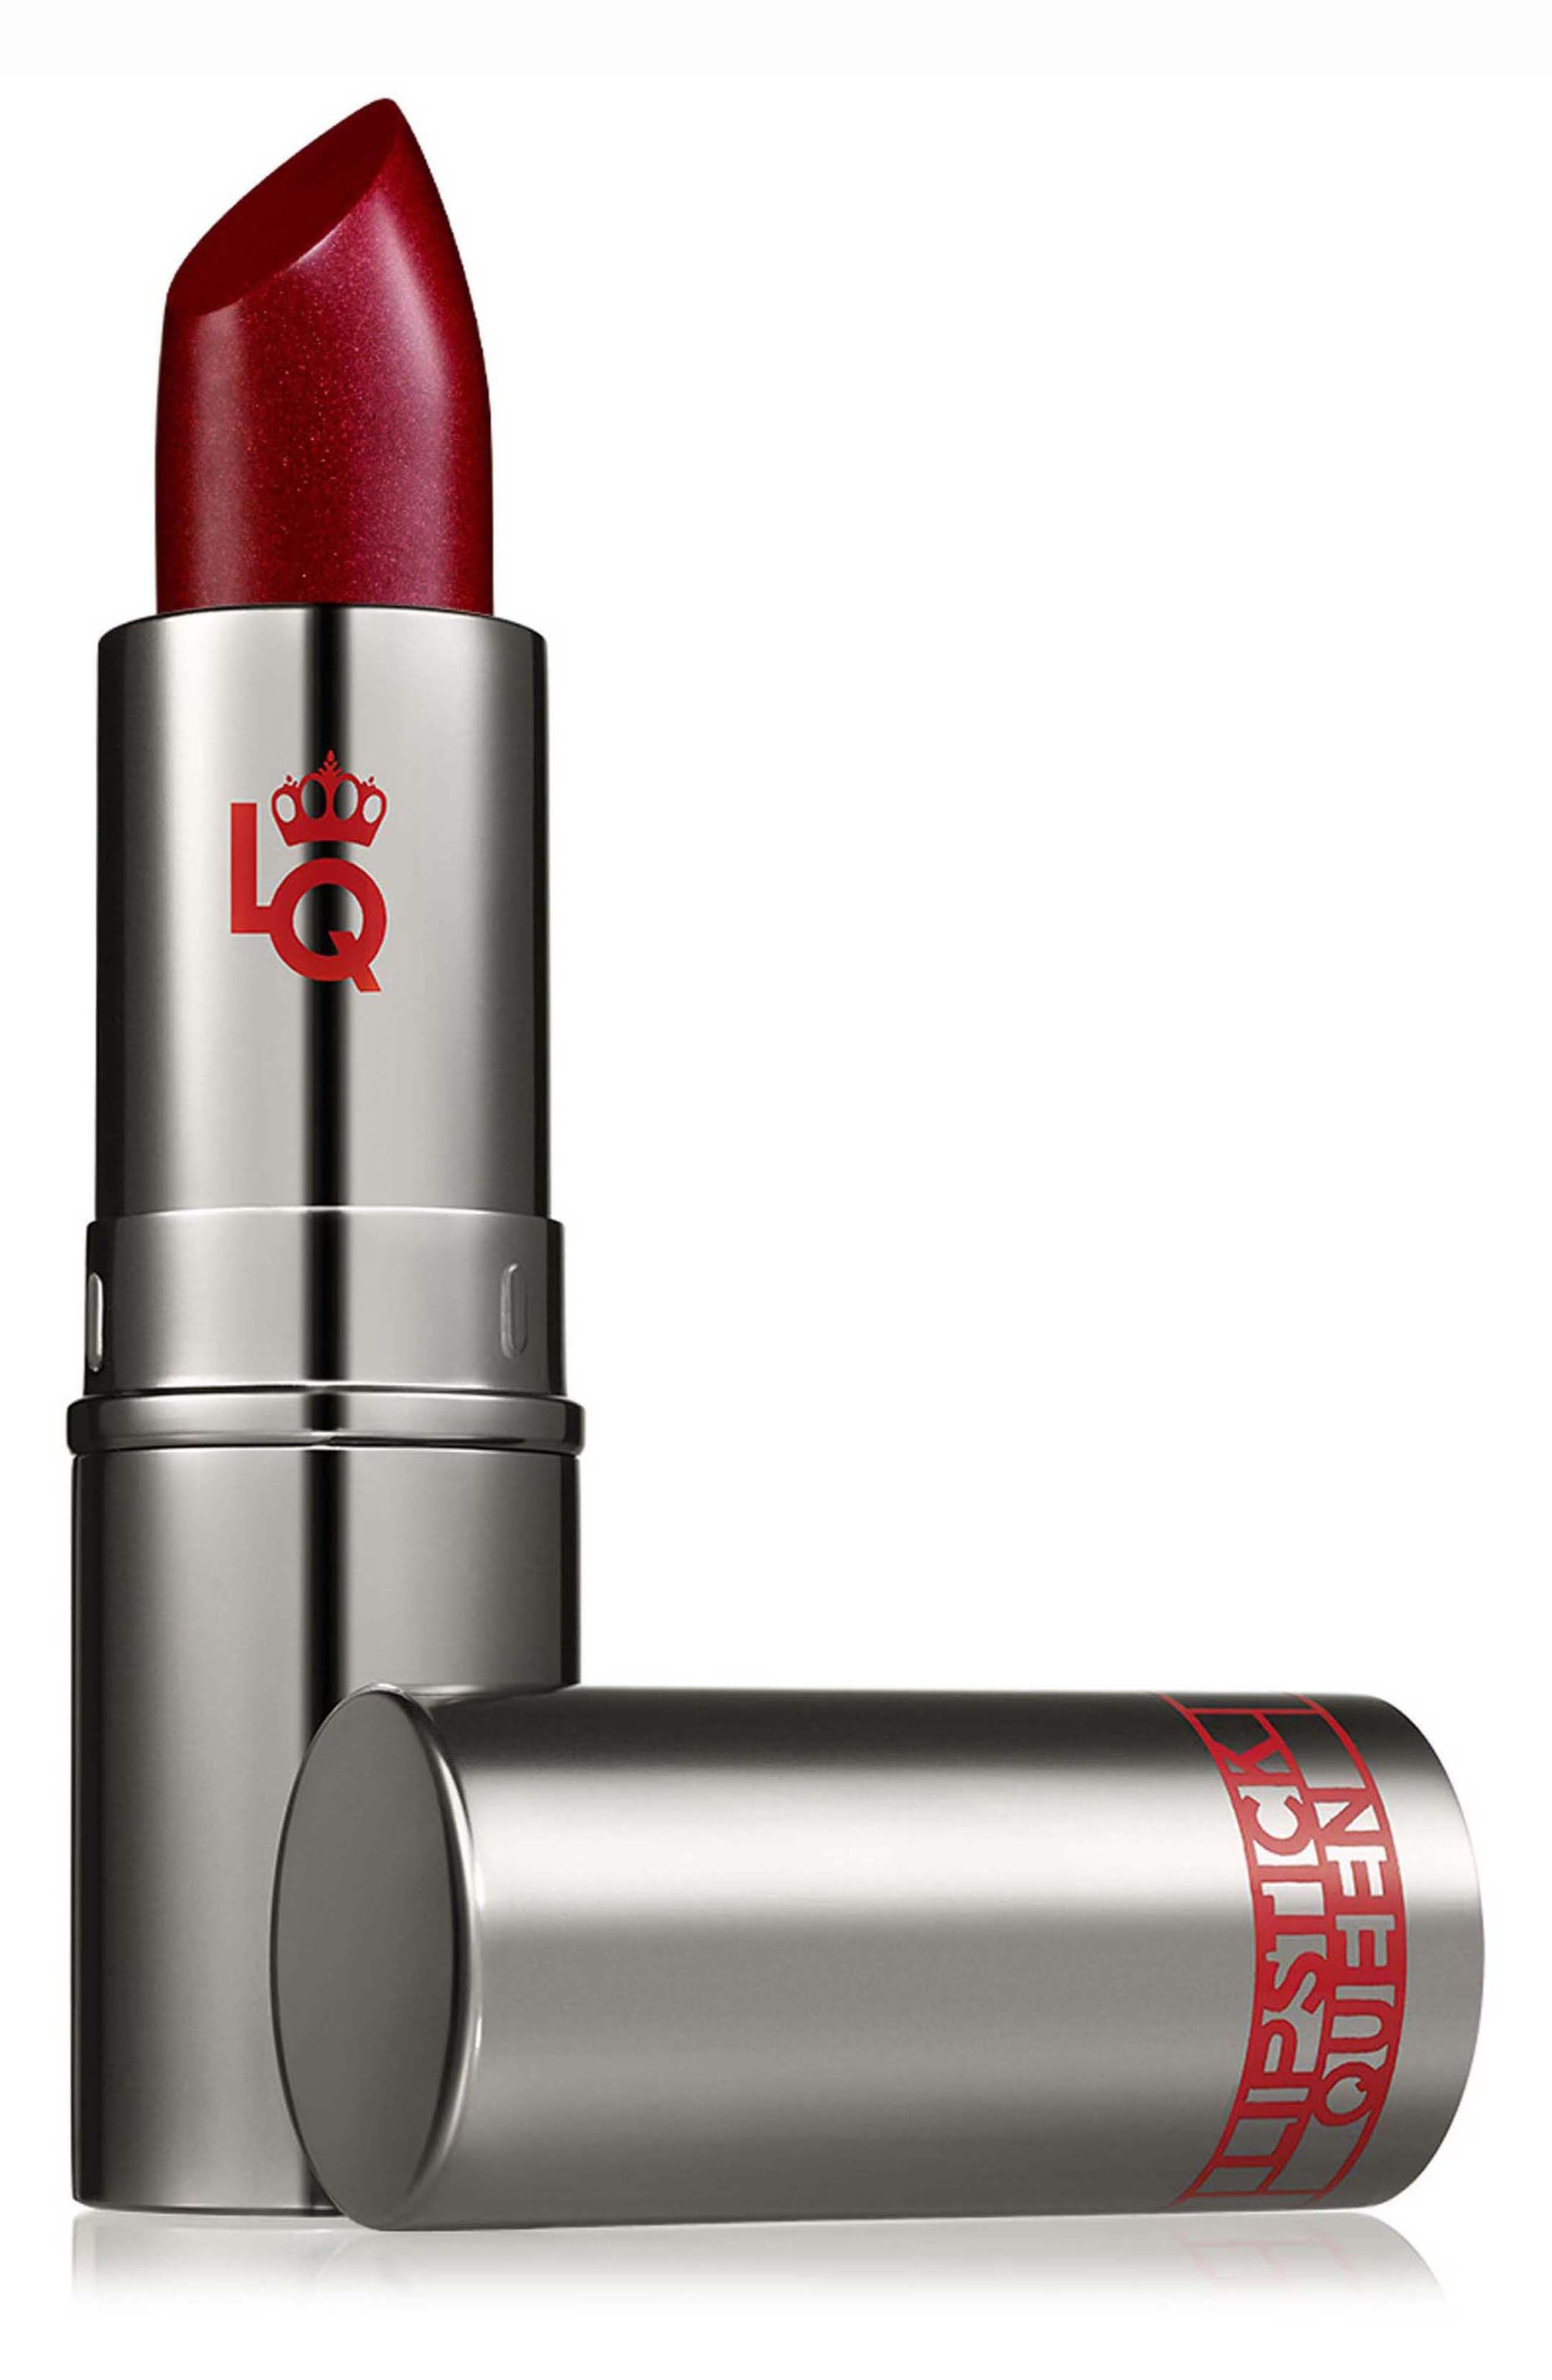 Main Image - SPACE.NK.apothecary Lipstick Queen The Metals Lipstick